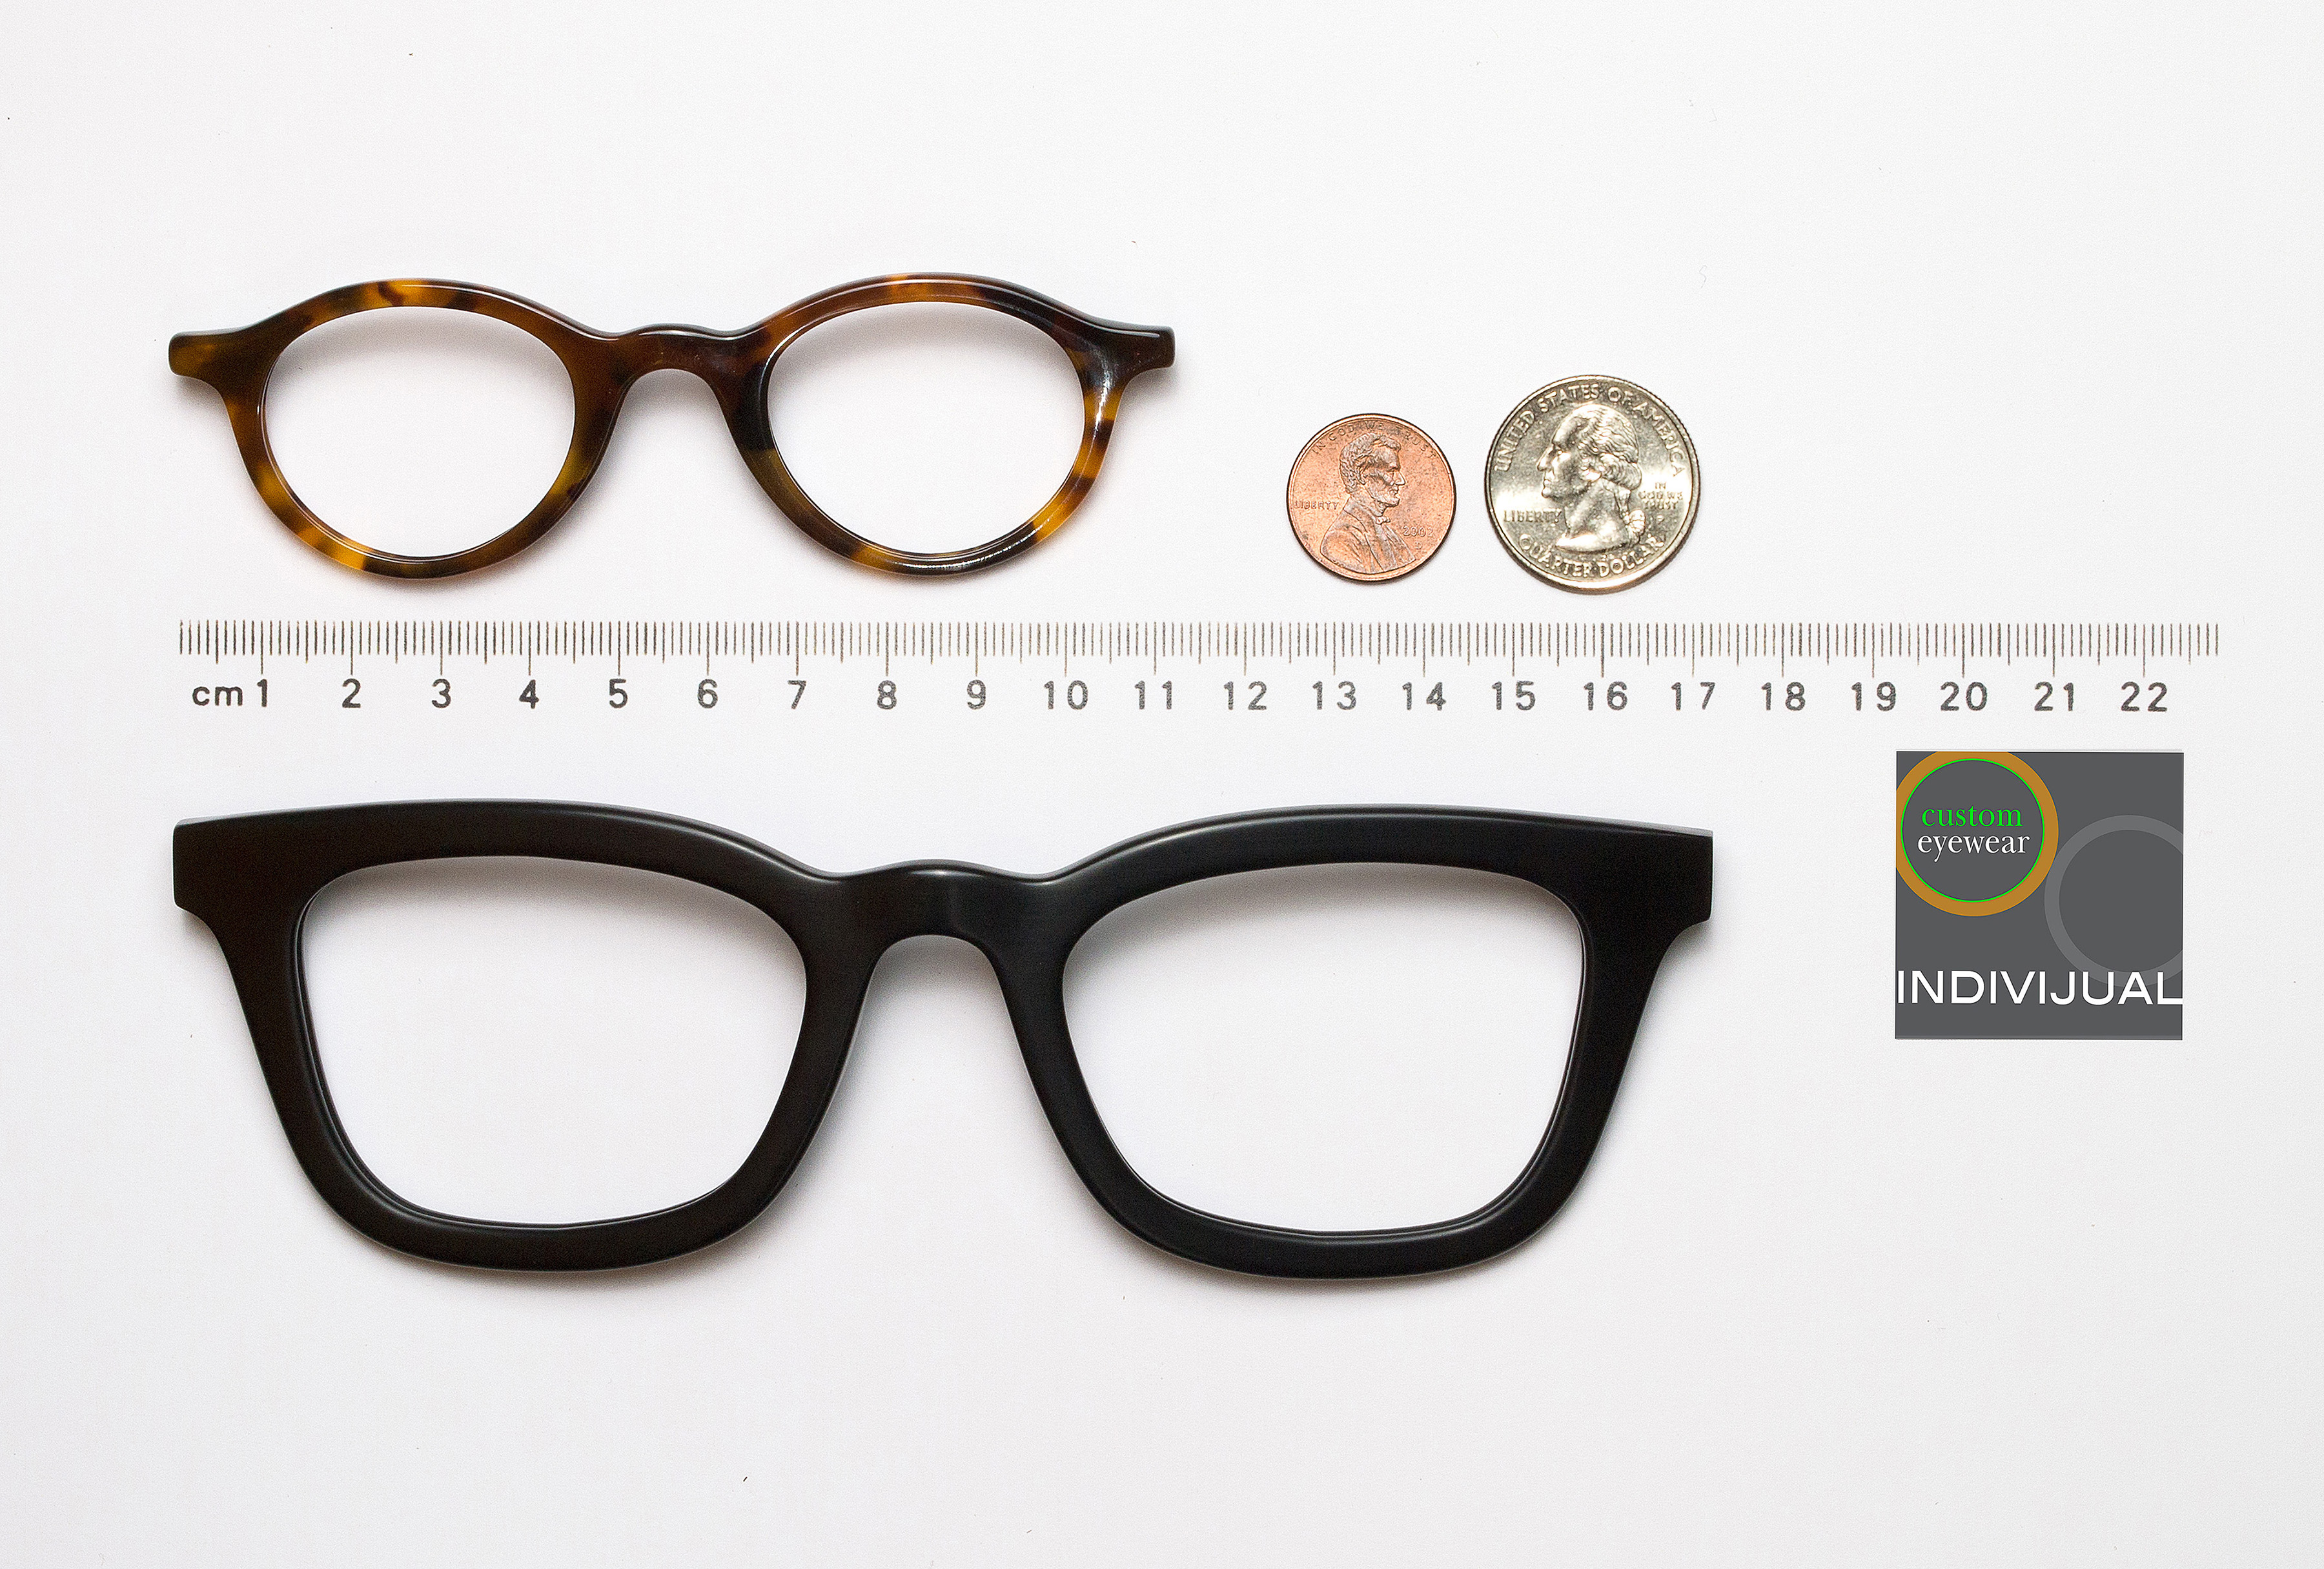 very large and very small custom fit eyewearindivijual custom eyewear crafts all sizes for all faces